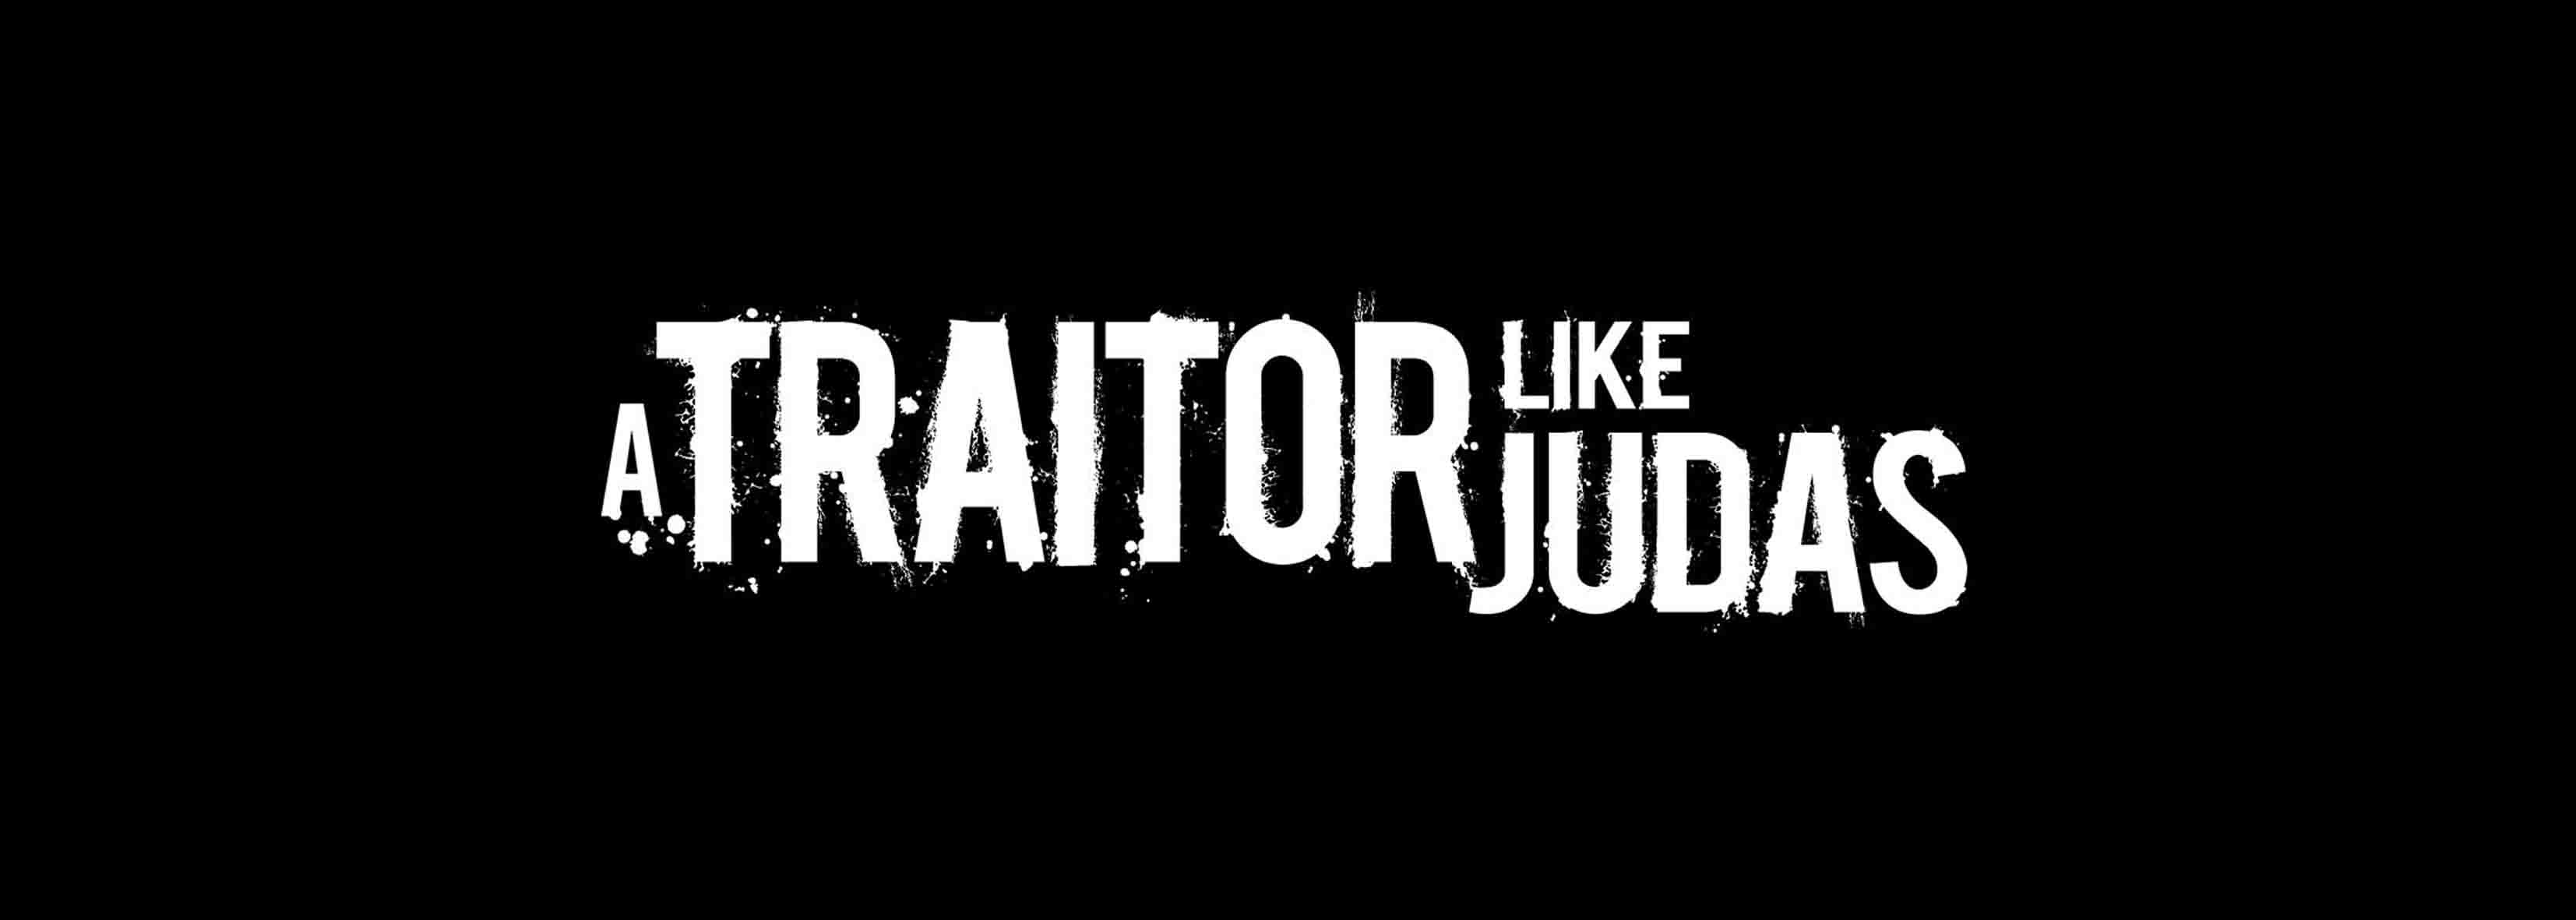 A TRAITOR LIKE JUDAS - TOURDATES